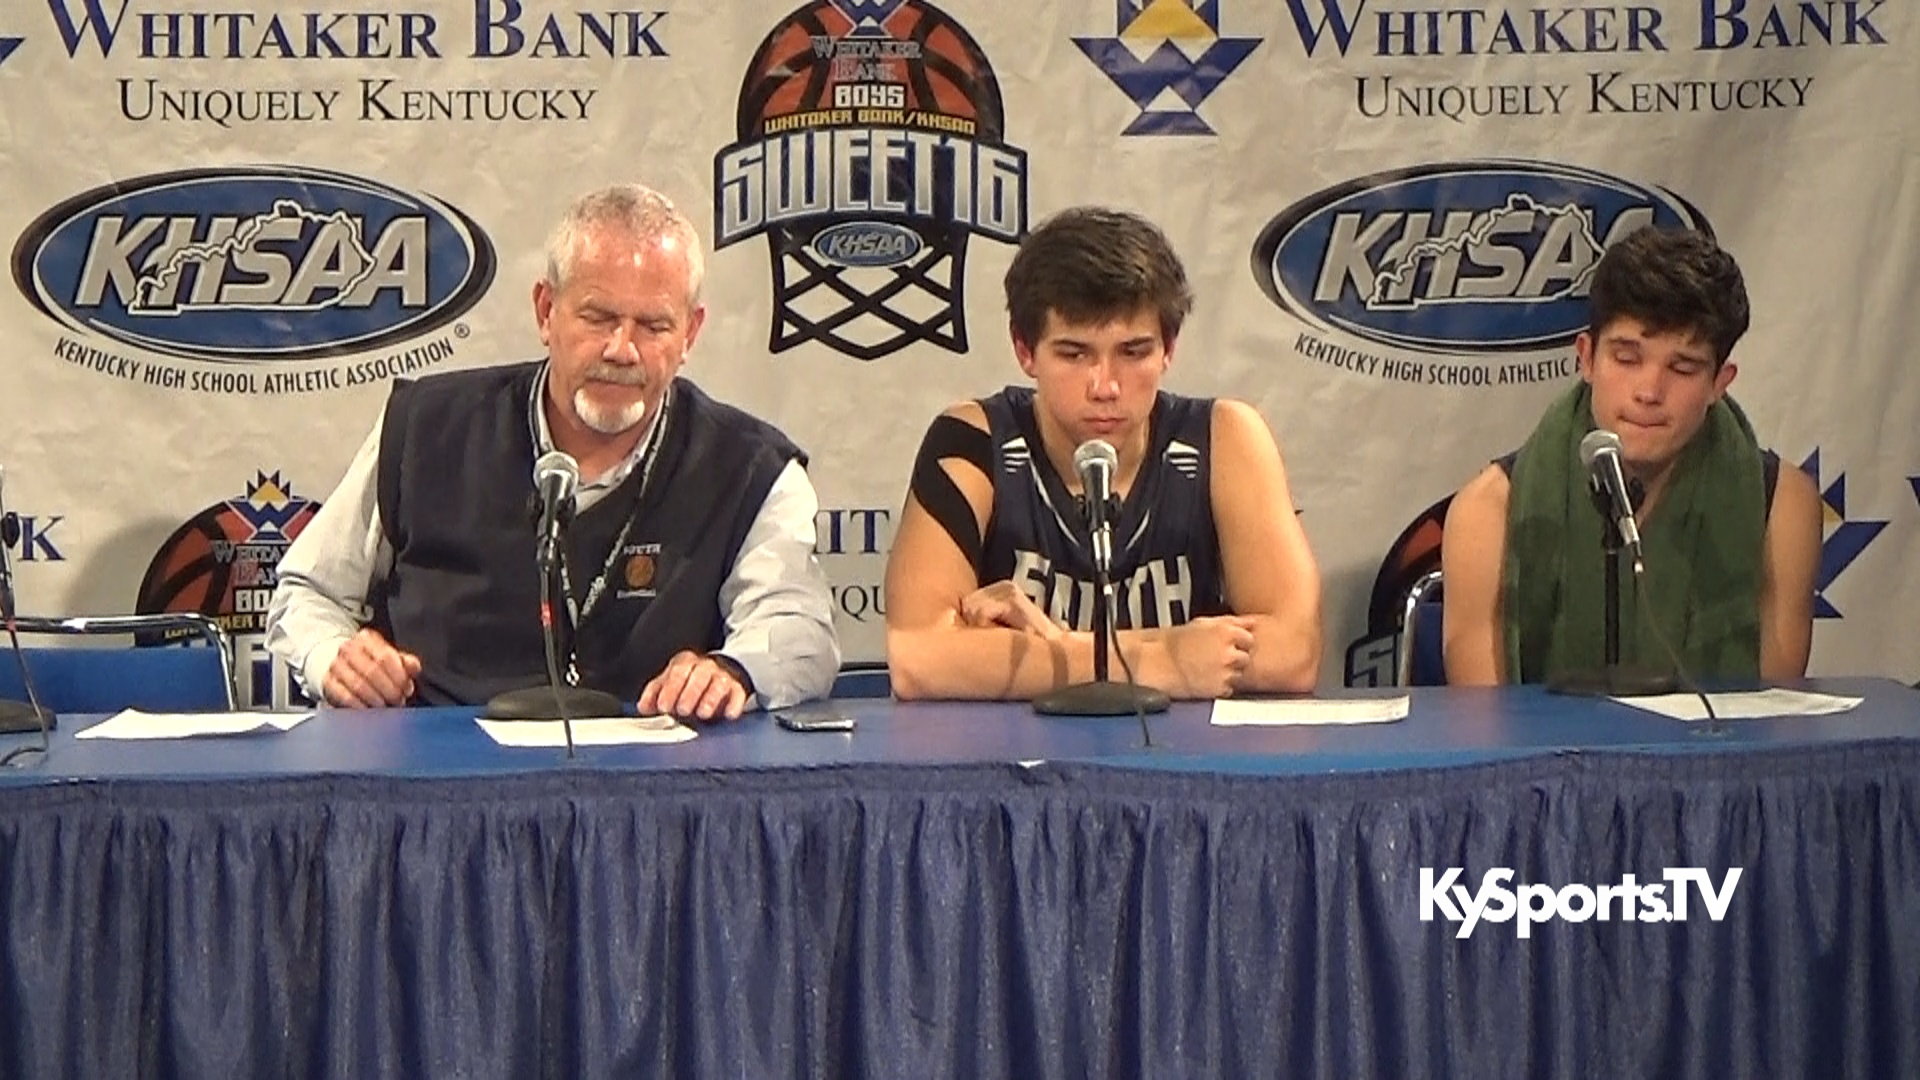 2016 Whitaker Bank KHSAA Sweet 16